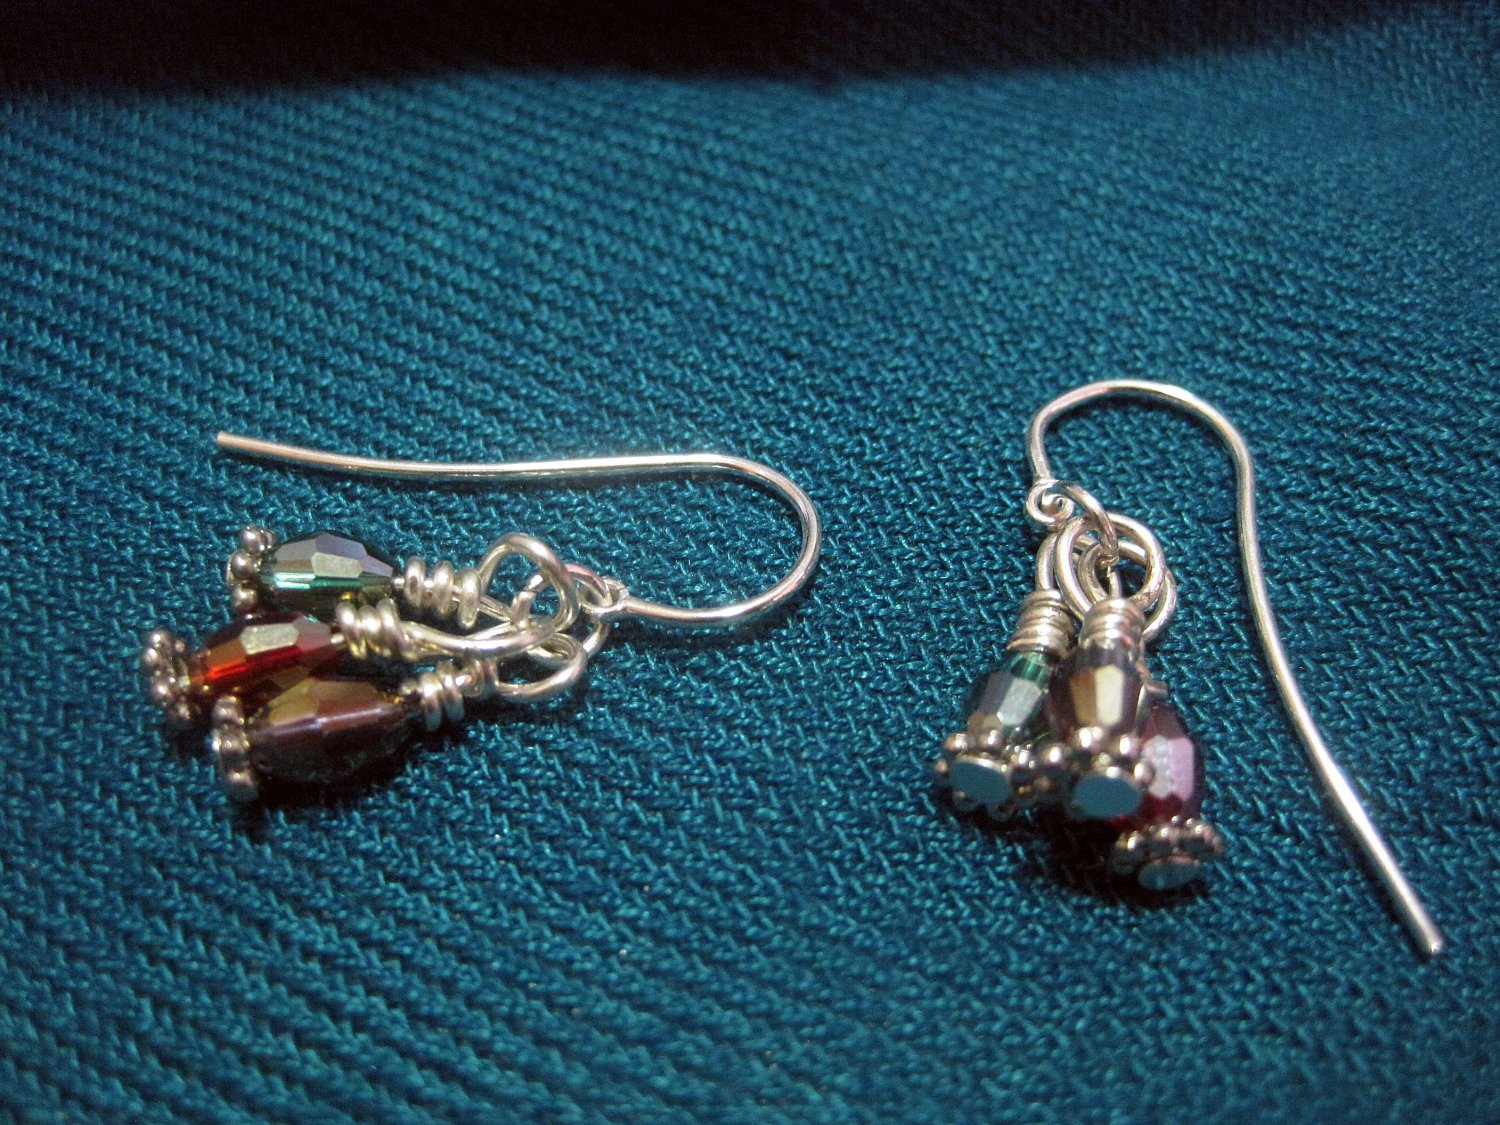 3 Colour Swarovki Crystals on French Ear Hook